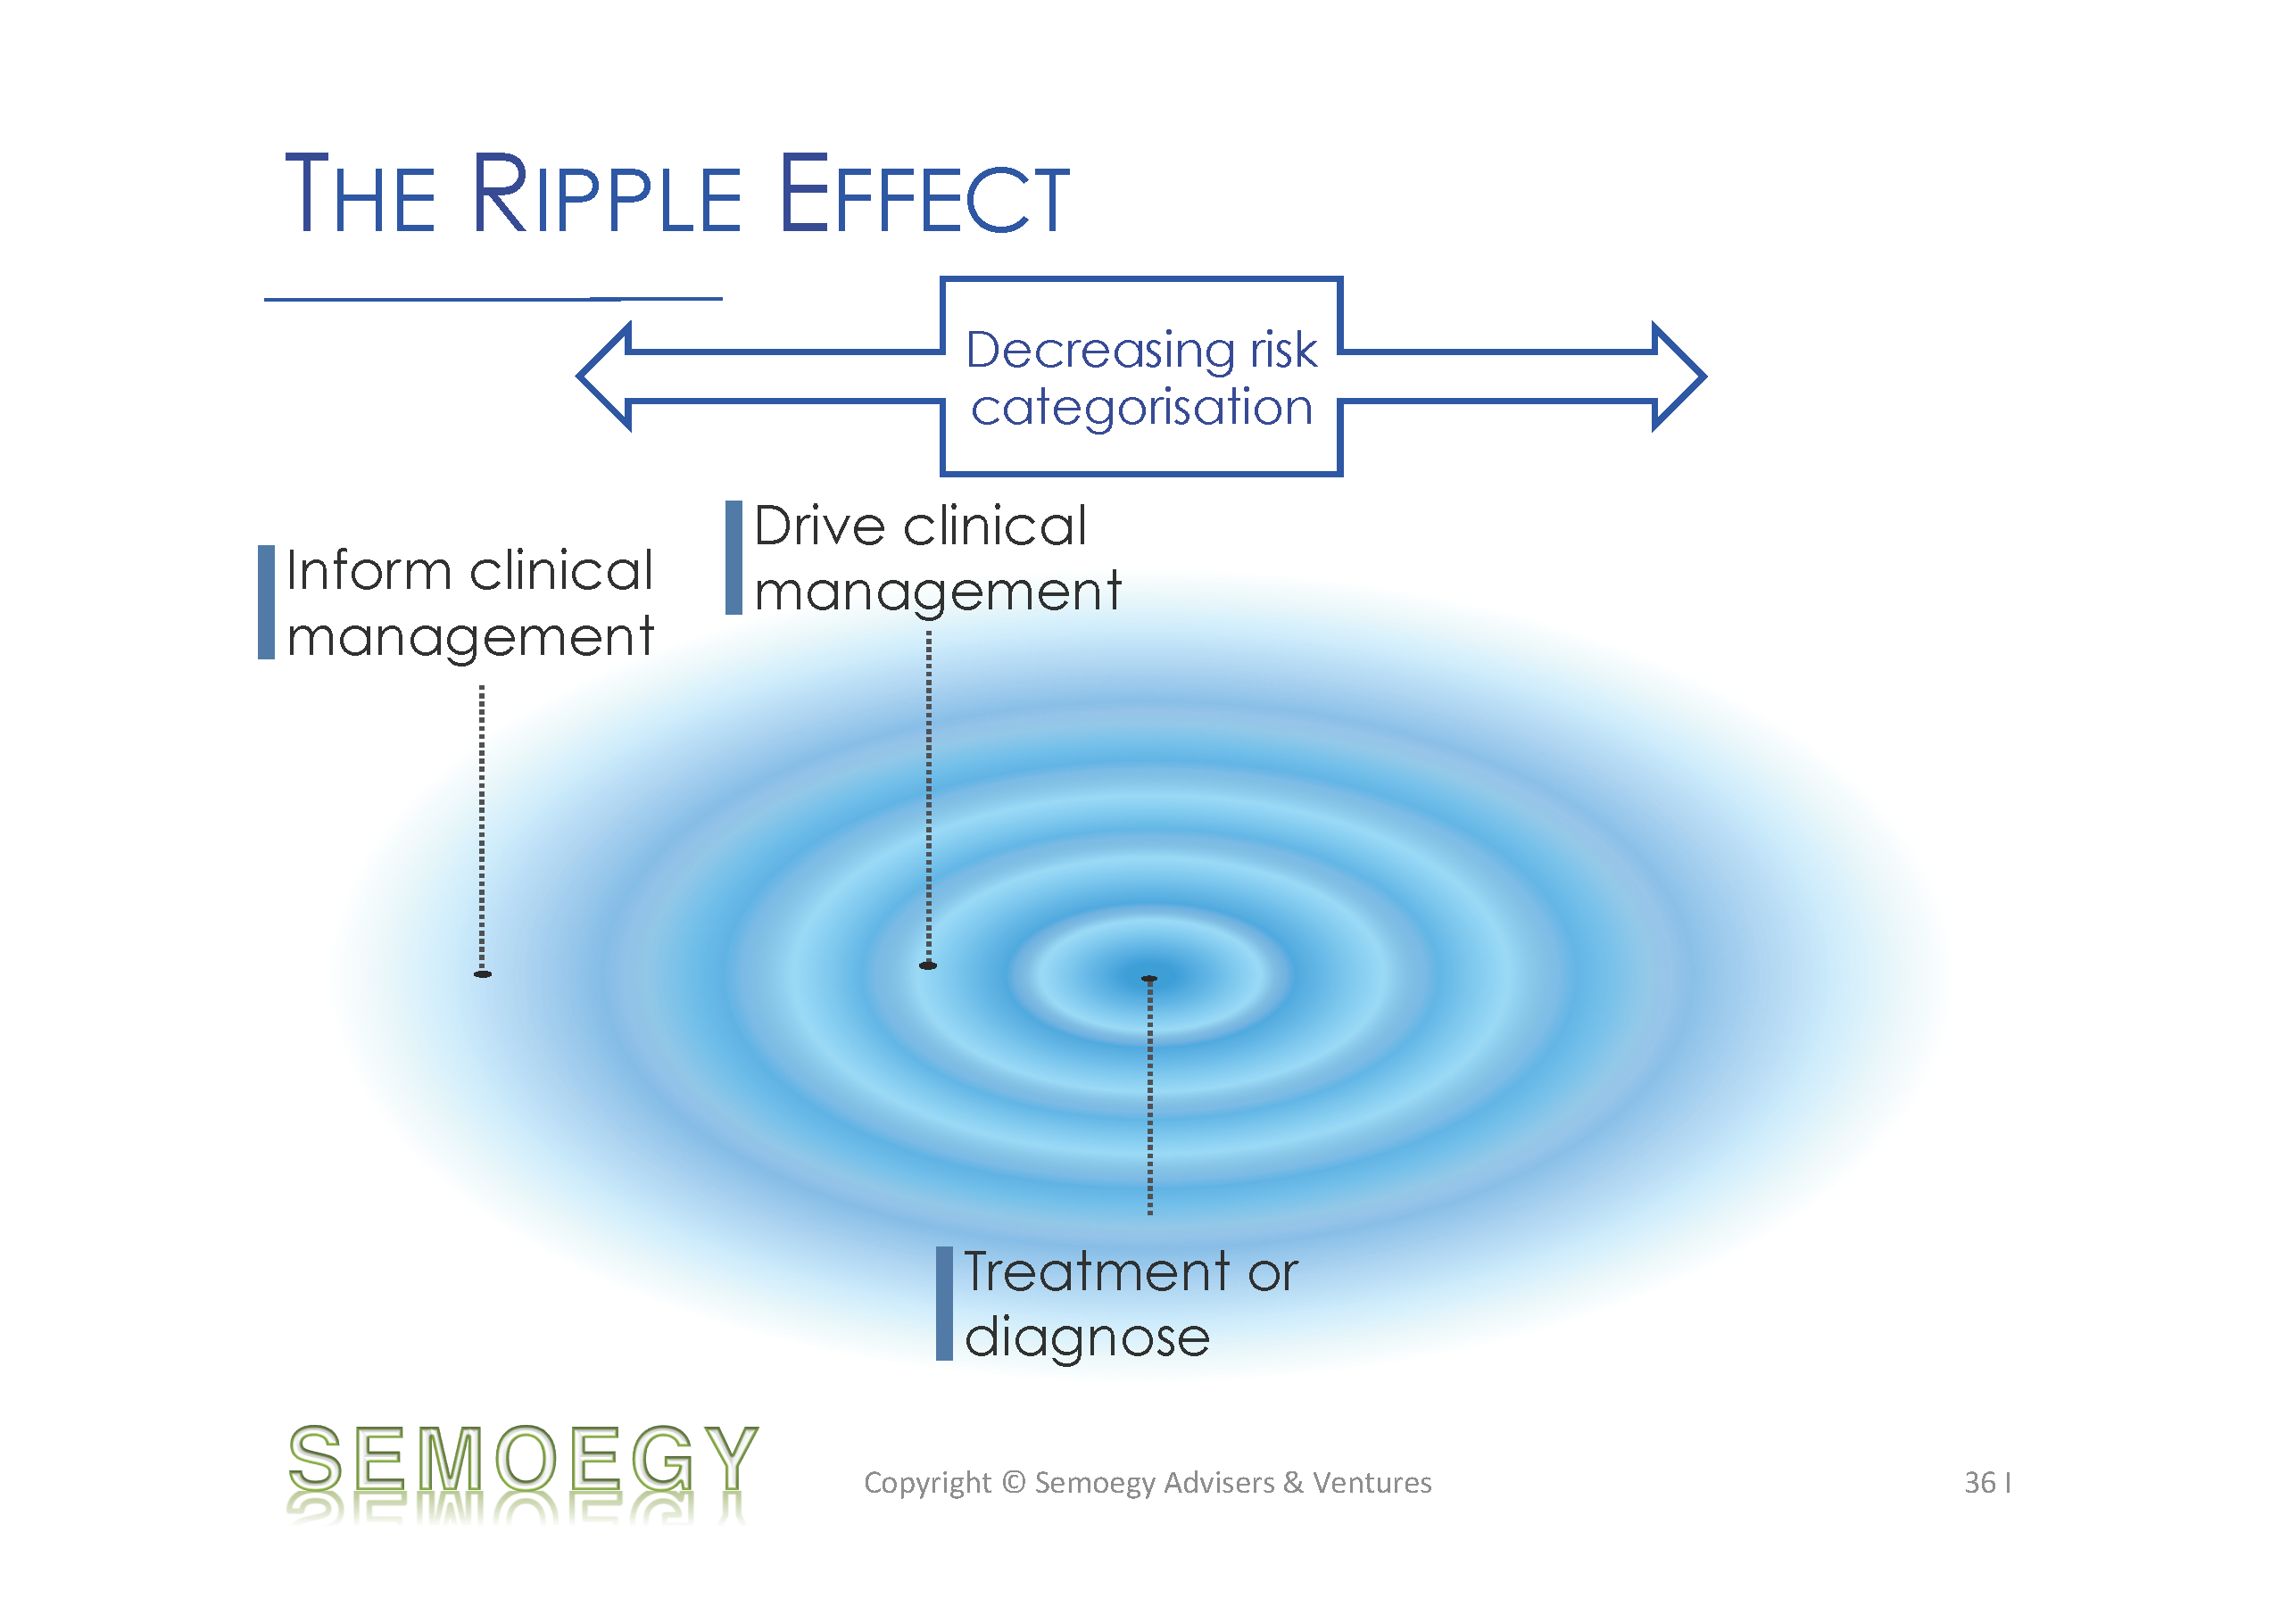 The Ripple Effect - Medical Device Definition